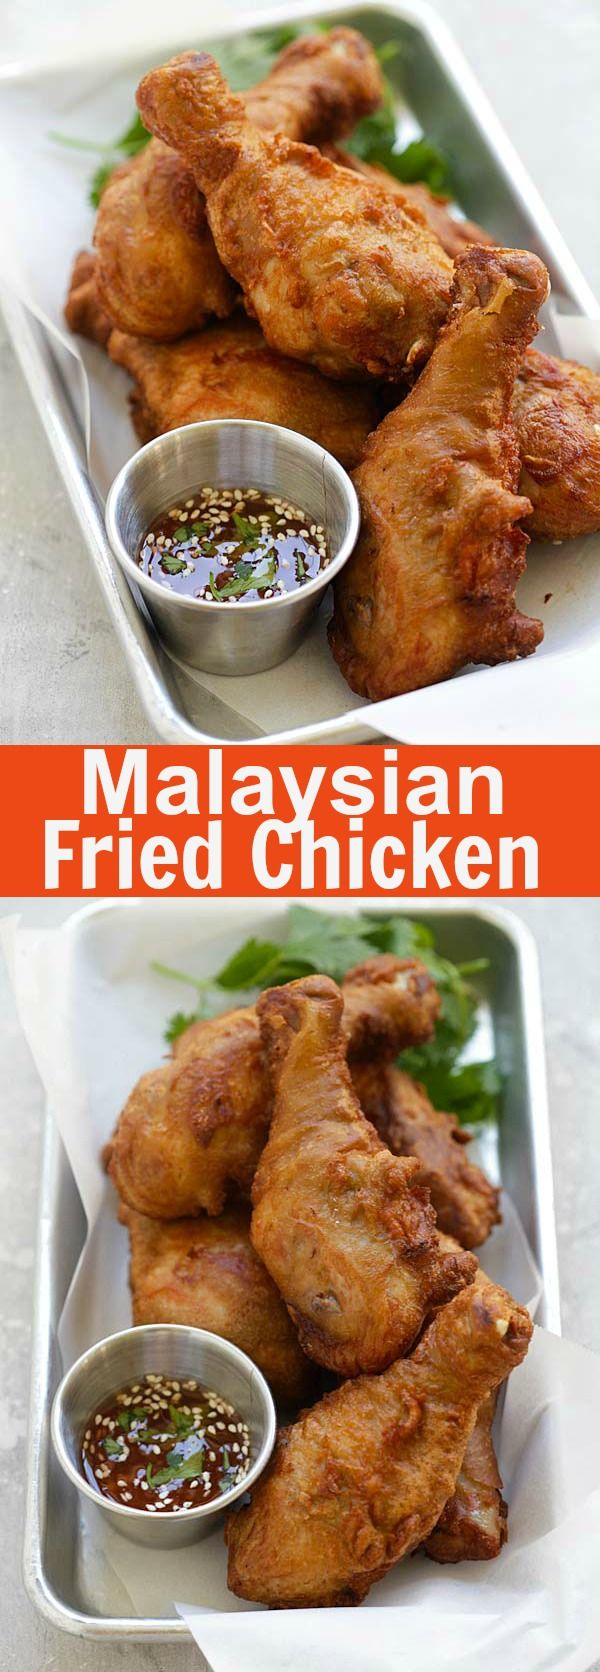 Belacan Fried Chicken – crispy and juicy Malaysian fried chicken marinated with cilantro and Asian seasonings. So delicious | rasamalaysia.com